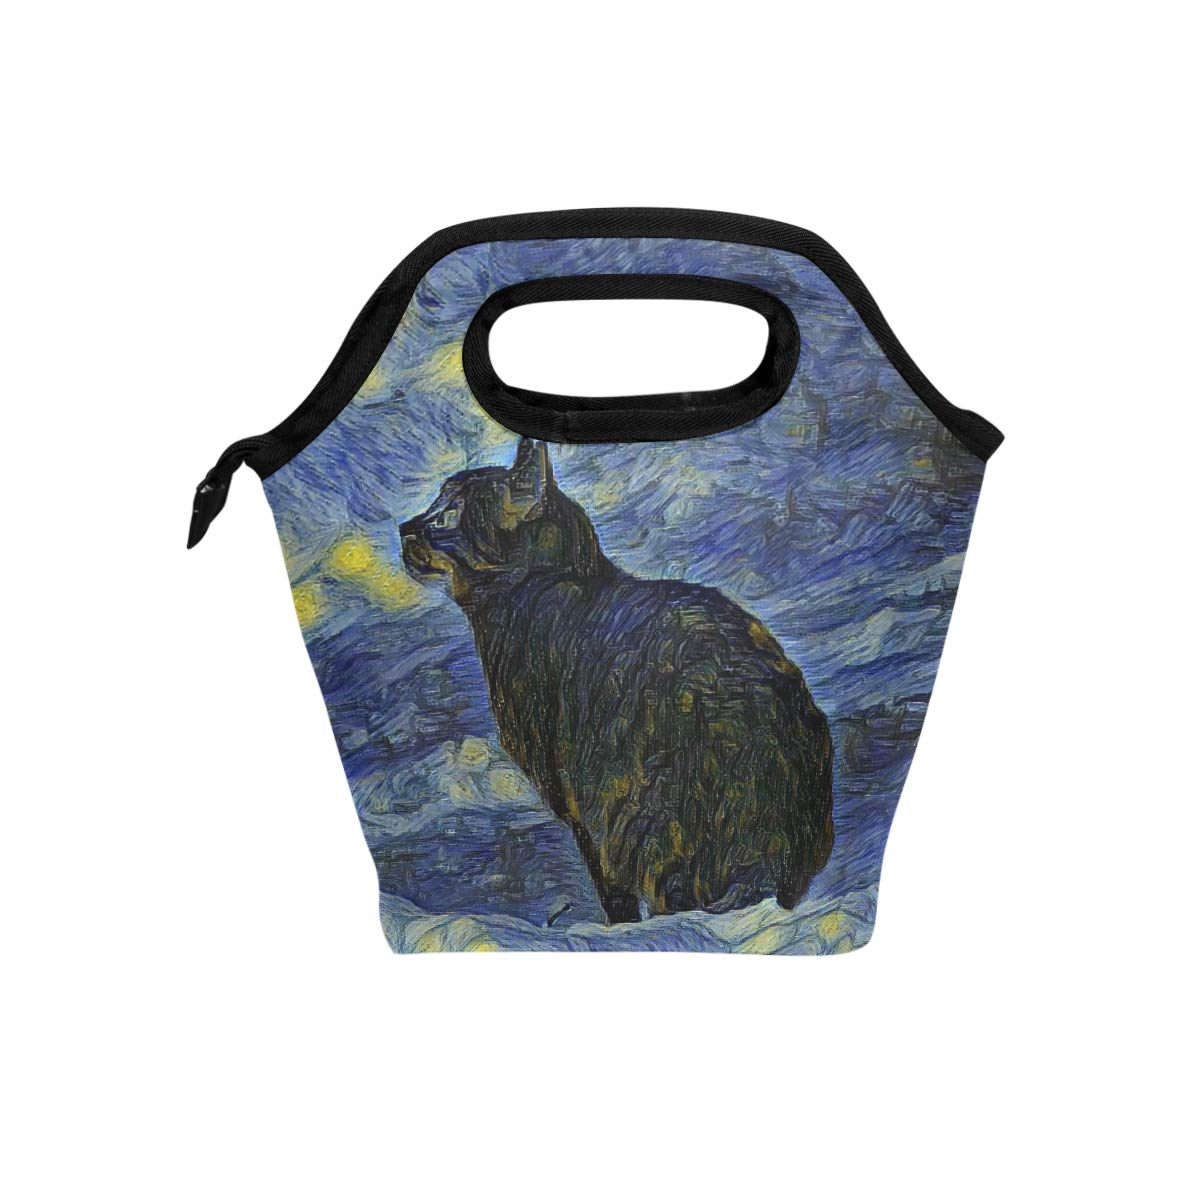 Naanle Cat Insulated Zipper Lunch Bag Cooler Tote Bag for Adult Teens Kids Girls Boys Men Women, Oil Painting Cat Lunch Boxes Lunchboxes Meal Prep Handbag for Outdoors School Office